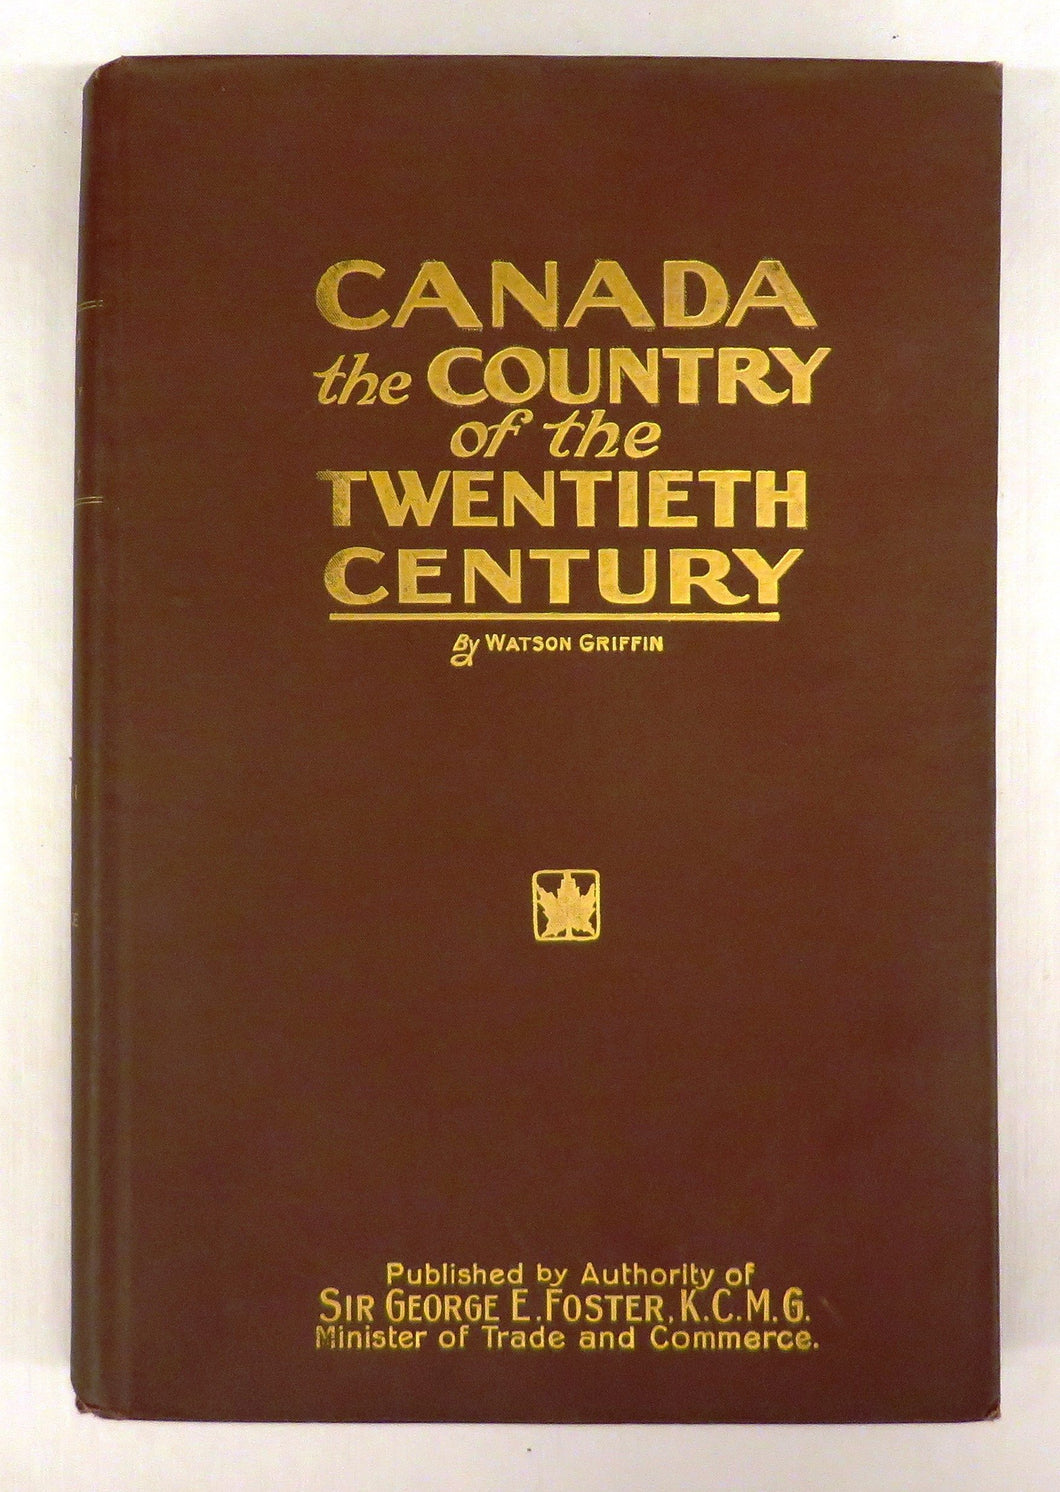 Canada: The Country of the Twentieth Century